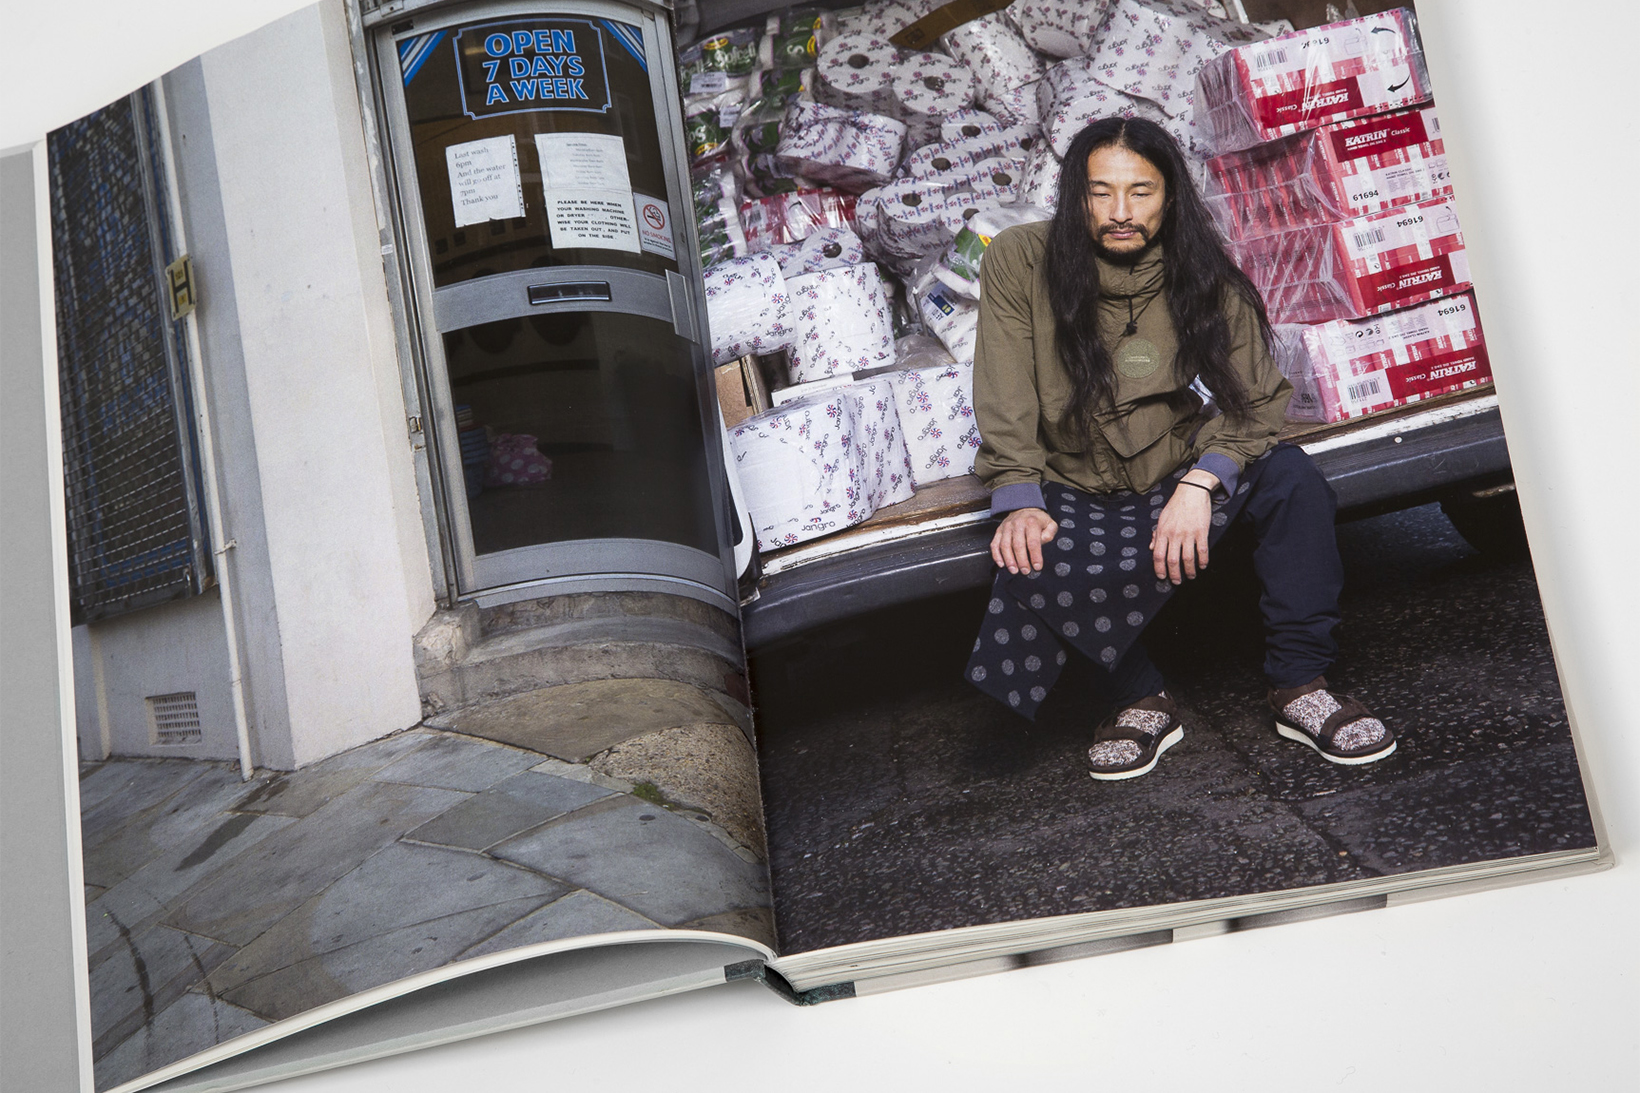 Garbstore Offers a Midseason Look at Palace, Cav Empt, Brain Dead and More